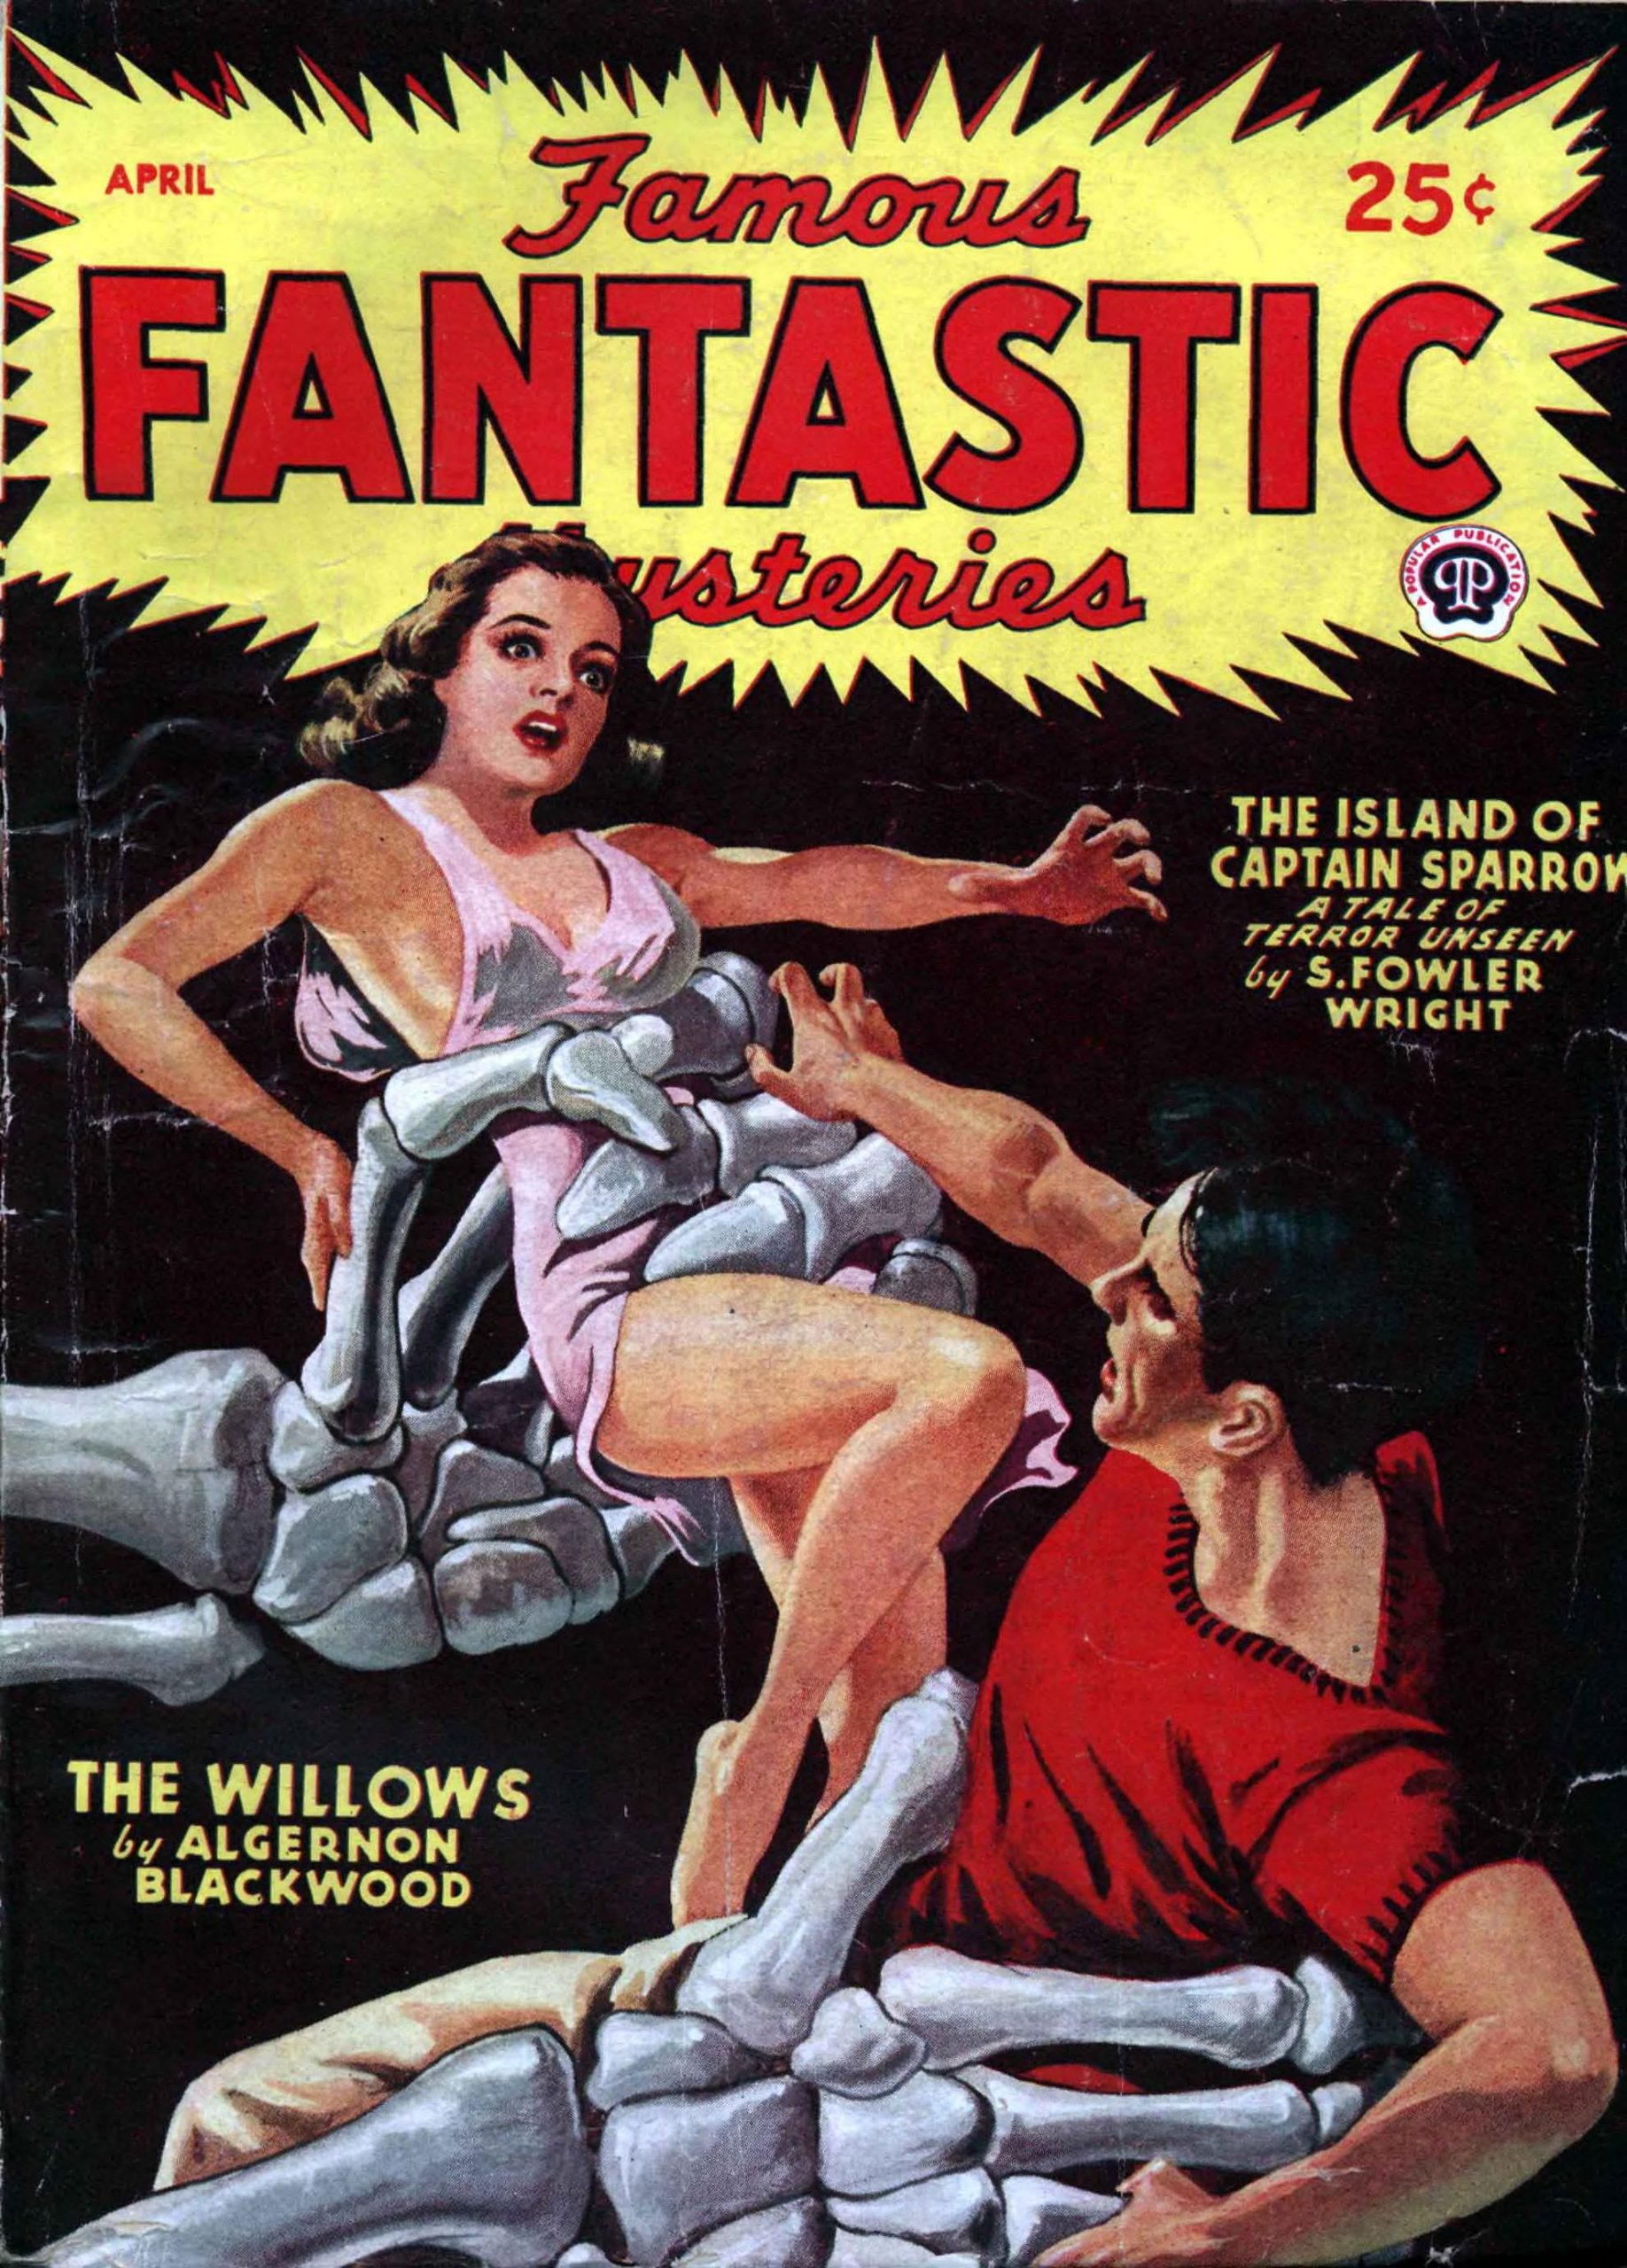 A man and a woman are grasped in the clutch of giant skeleton hands on the April 1946 cover of Famous Fantastic Mysteries.